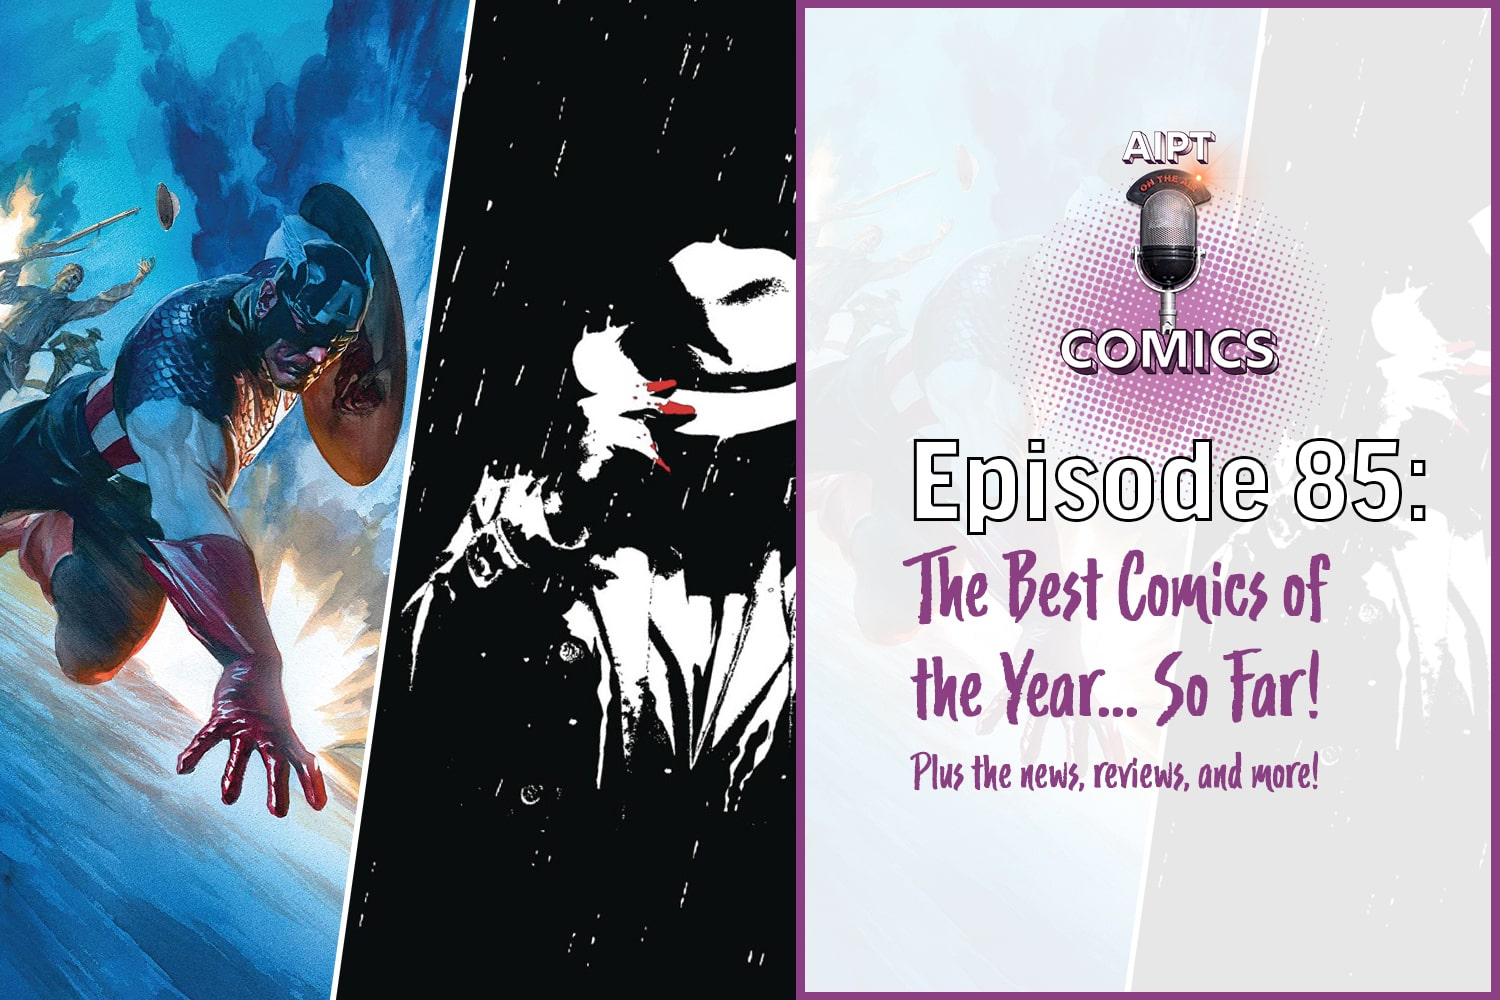 AIPT Comics Podcast Episode 85: The Best Comics of the Year 2020 - So far!